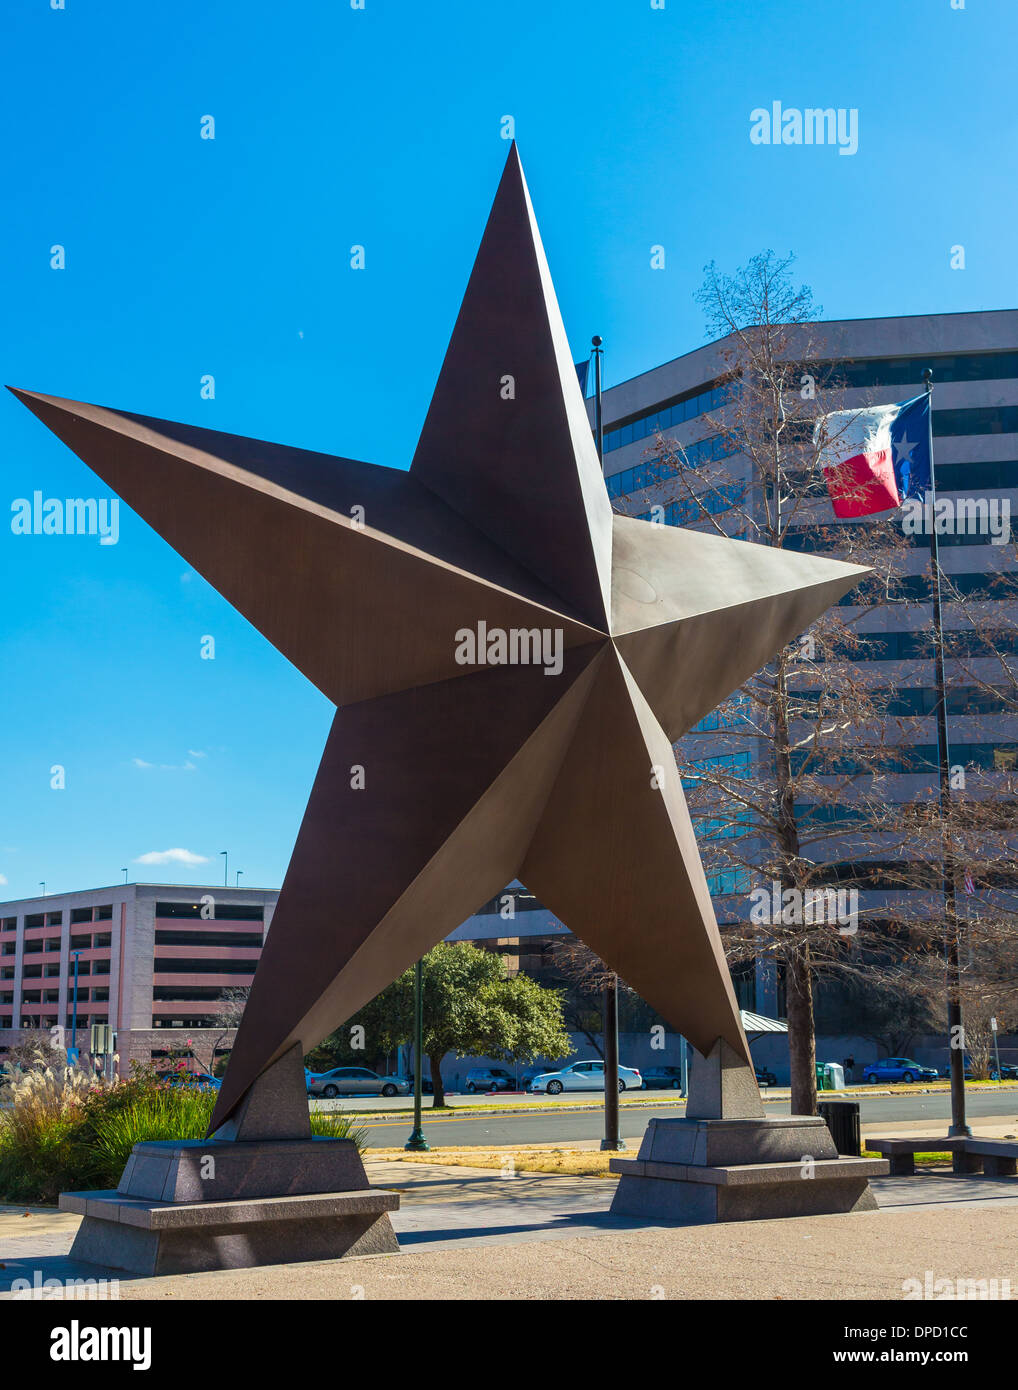 The Bullock Texas State History Museum, is a history museum in Austin, Texas - Stock Image